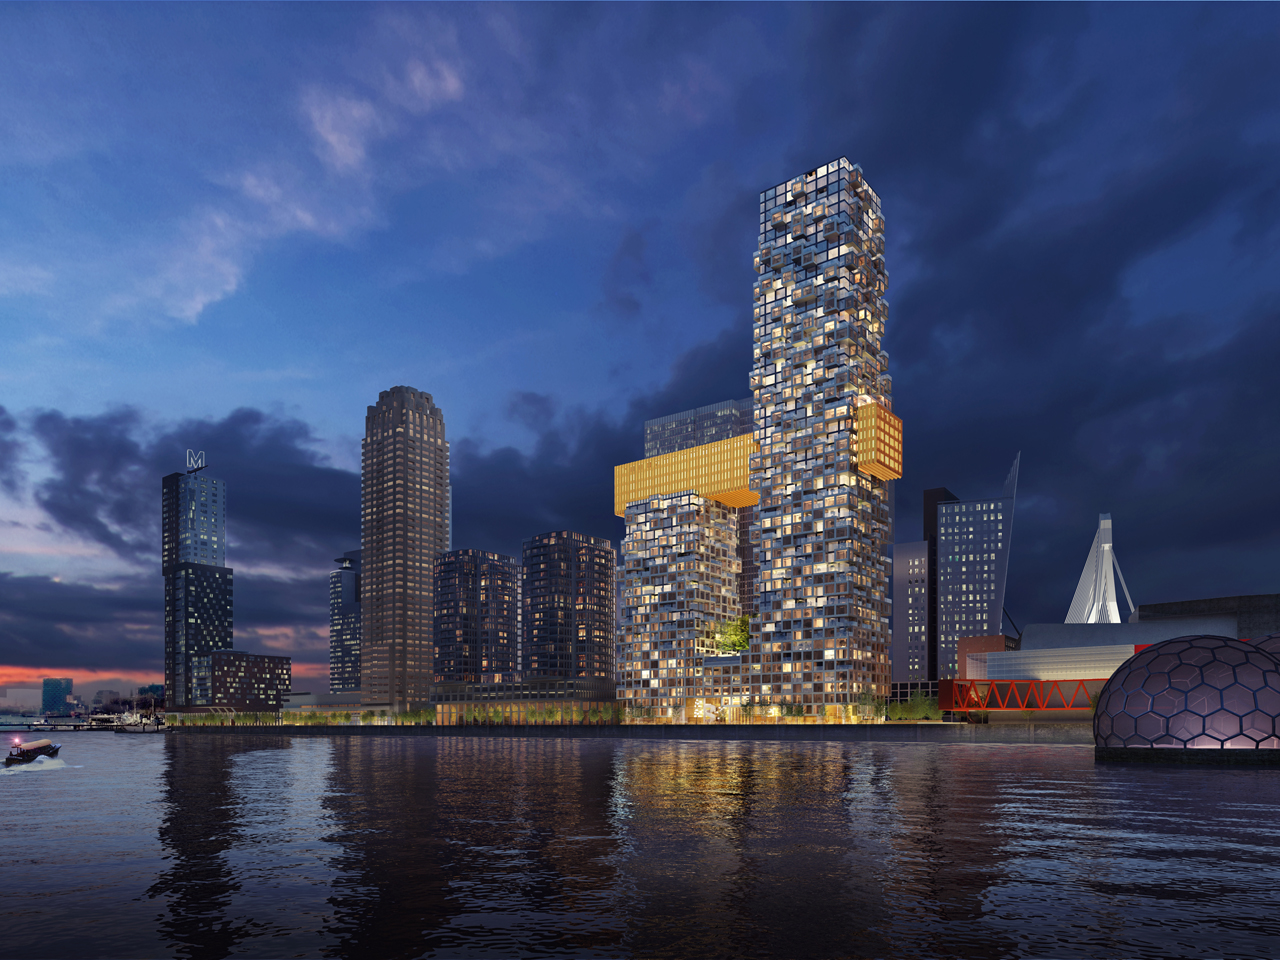 MVRDV announced as competition winners for The Sax, a new 51 floor mixed-use tower in Rotterdam